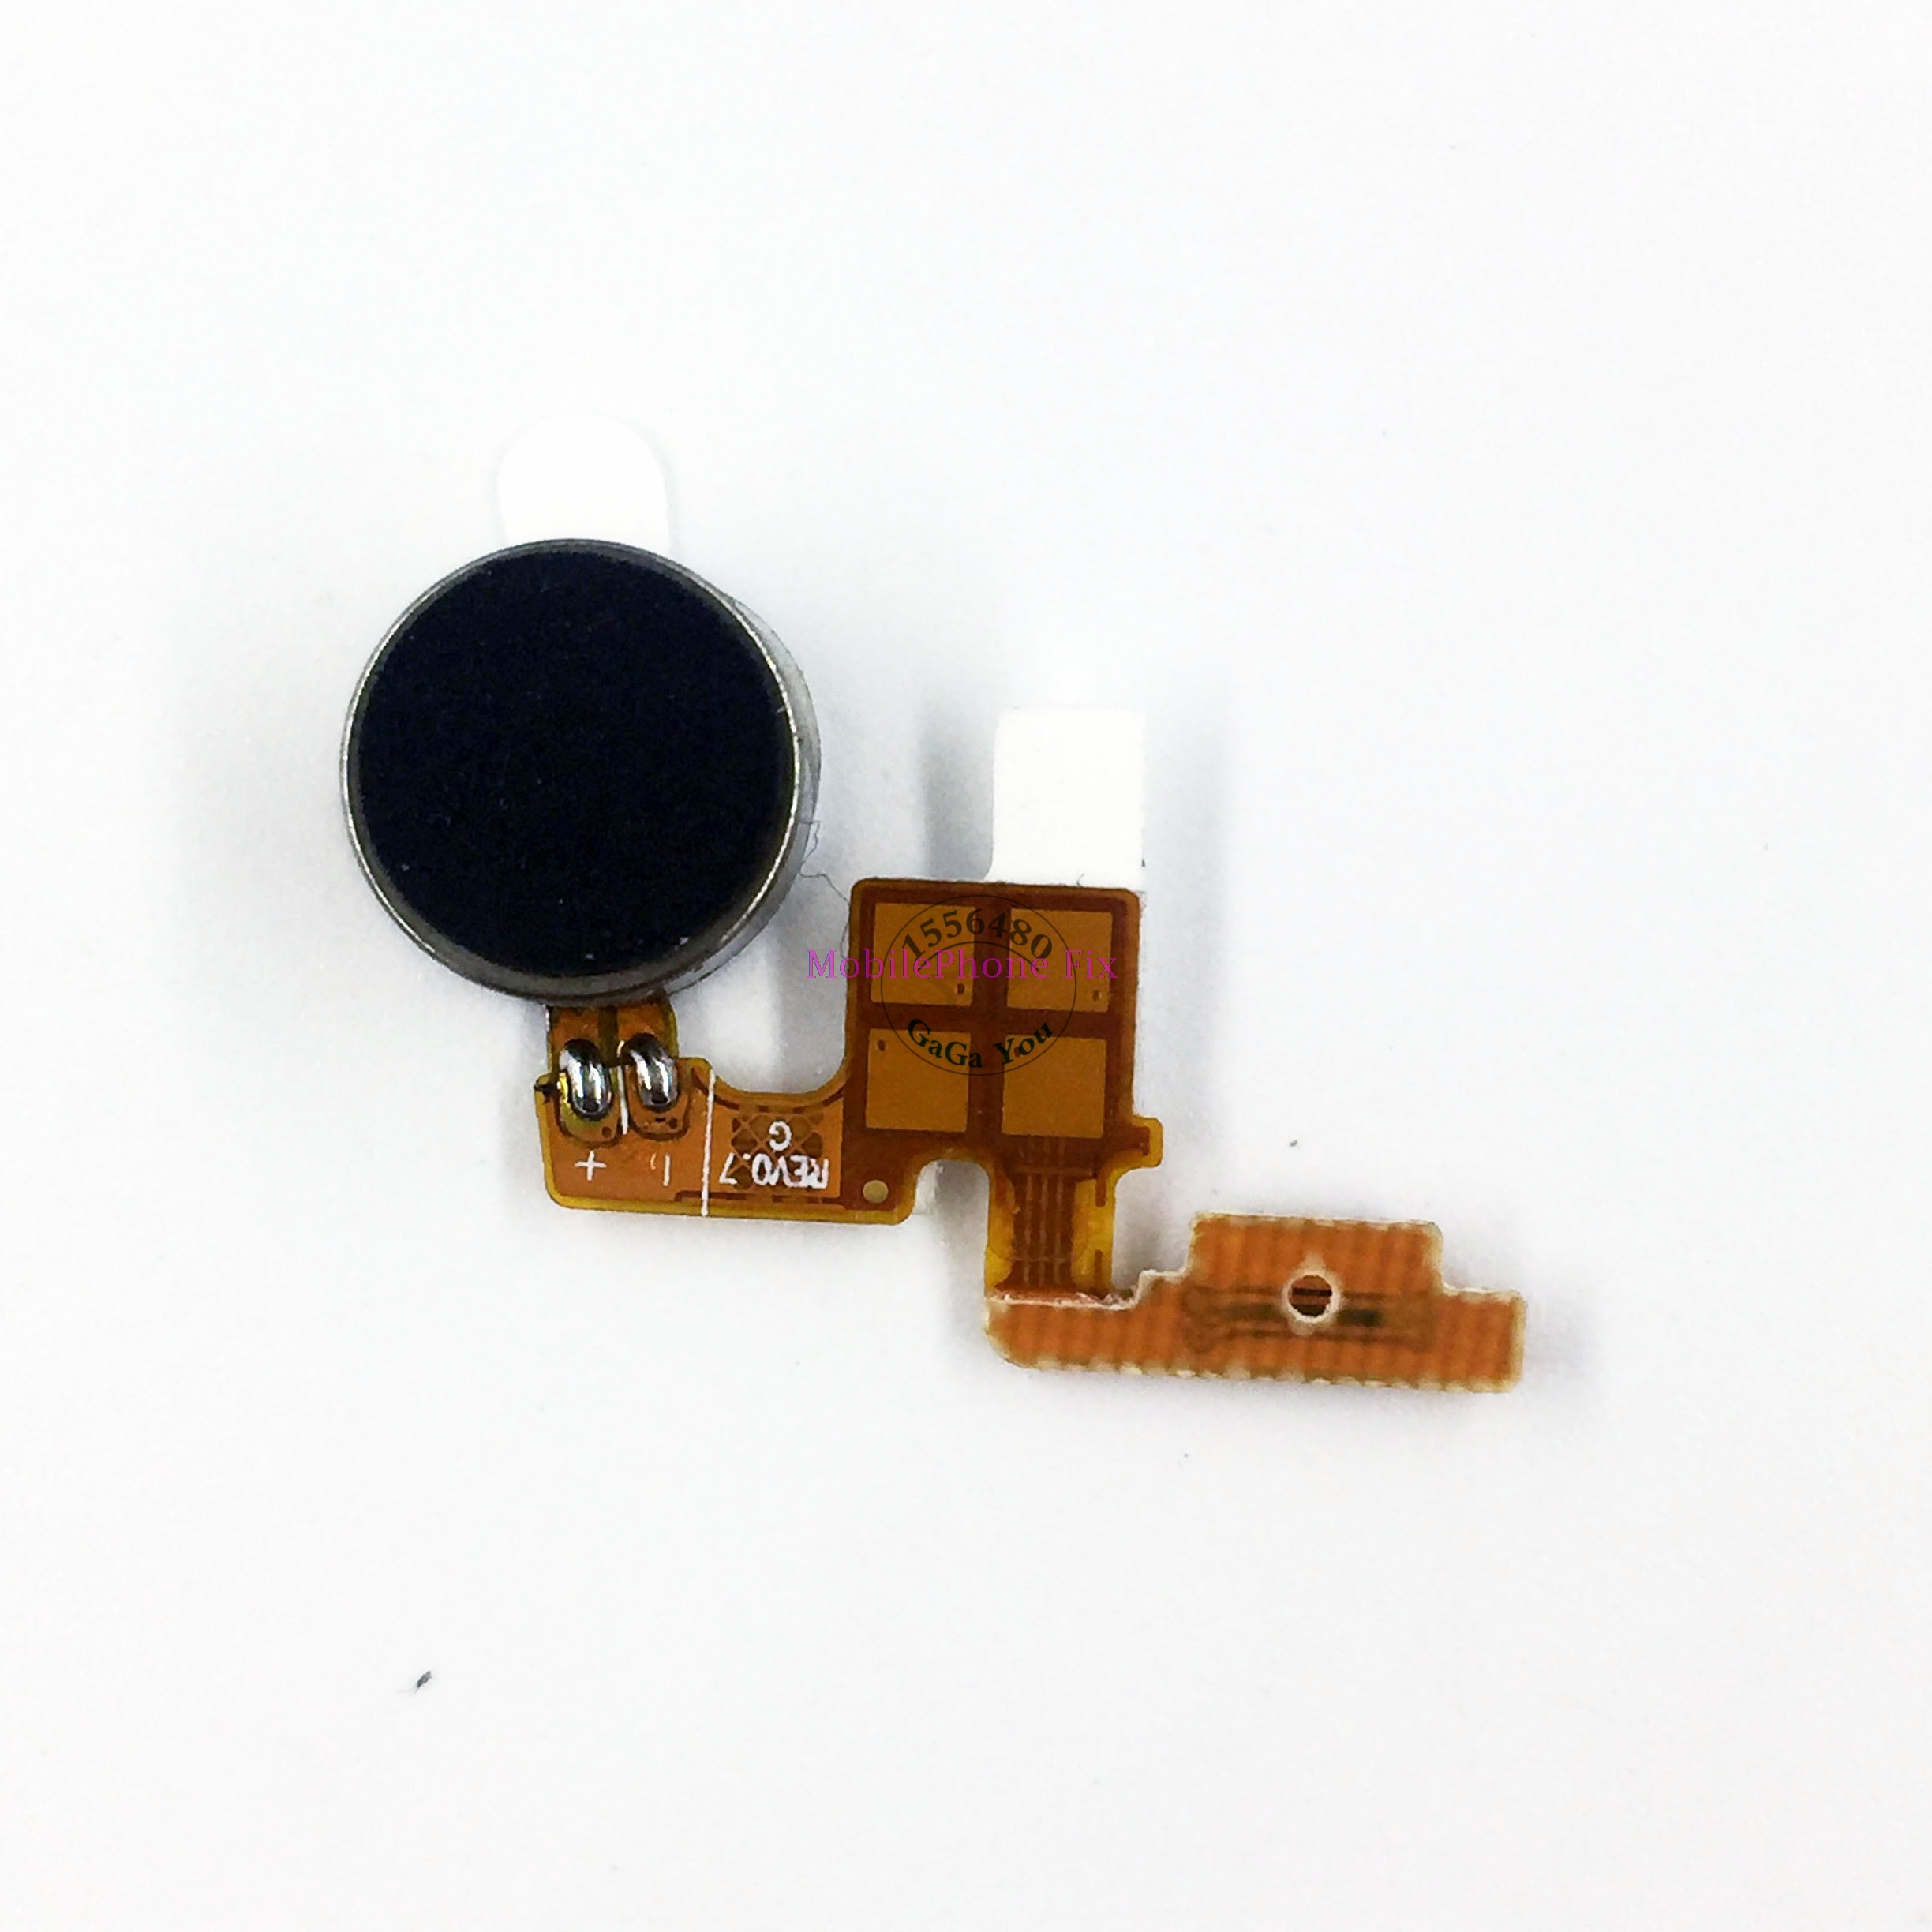 For Samsung Galaxy Note 3 N9000 N9002 N9005 Power Button Swtich with Vibrator Vibrating Flex Cable